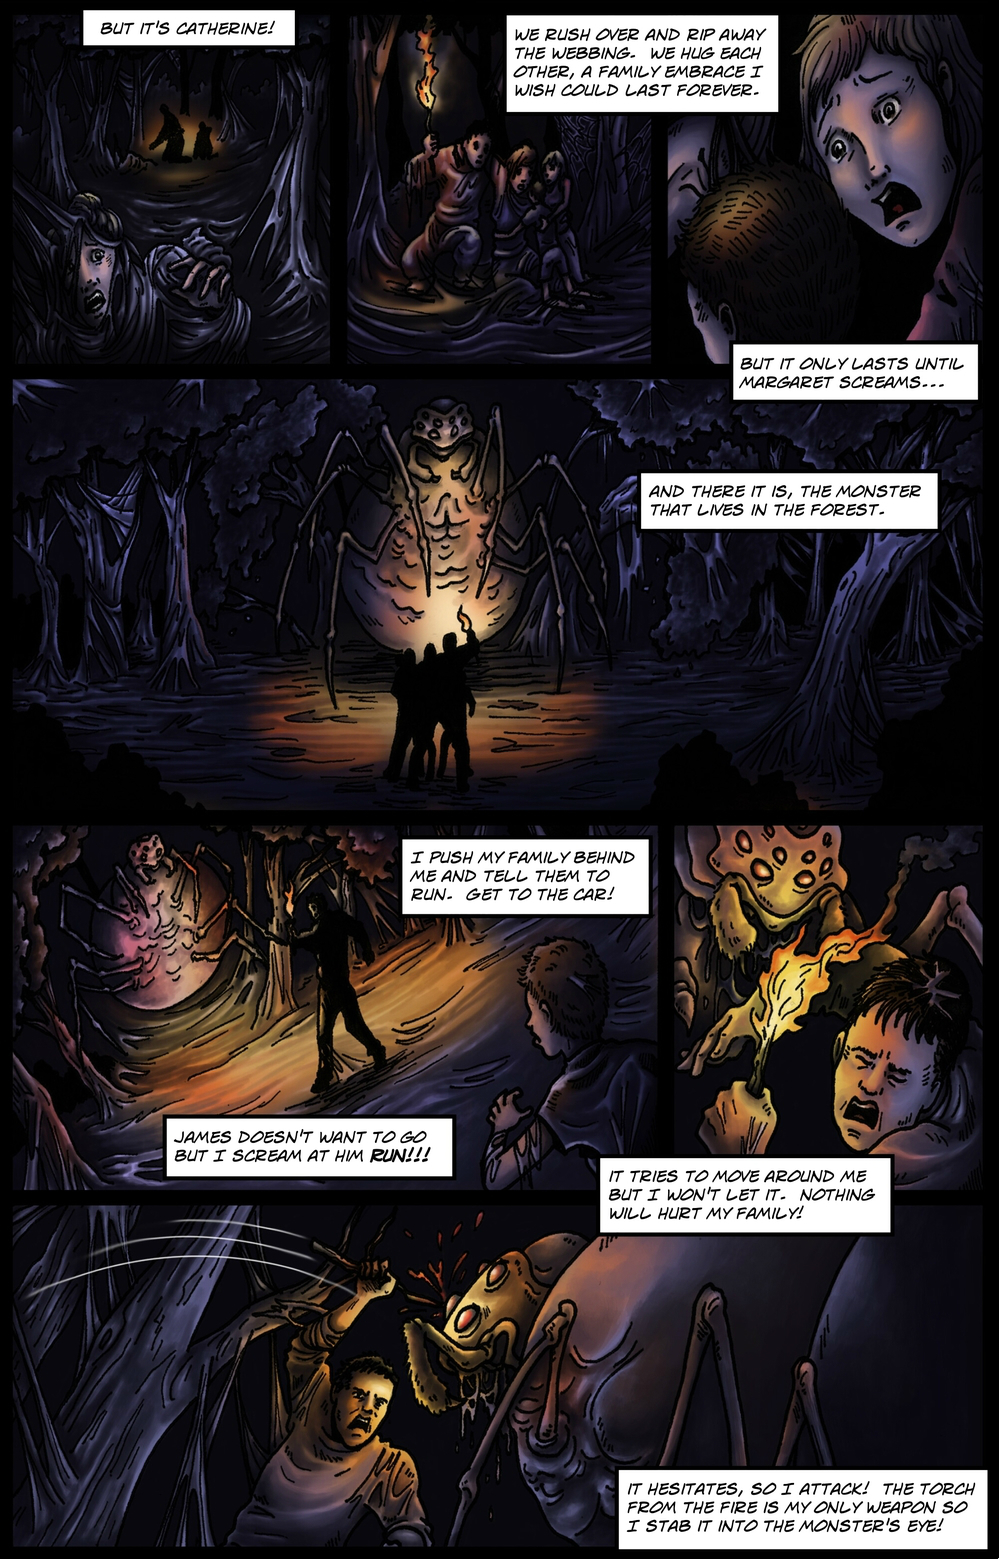 COCOON page 5 - story 9 in The Book of Lies